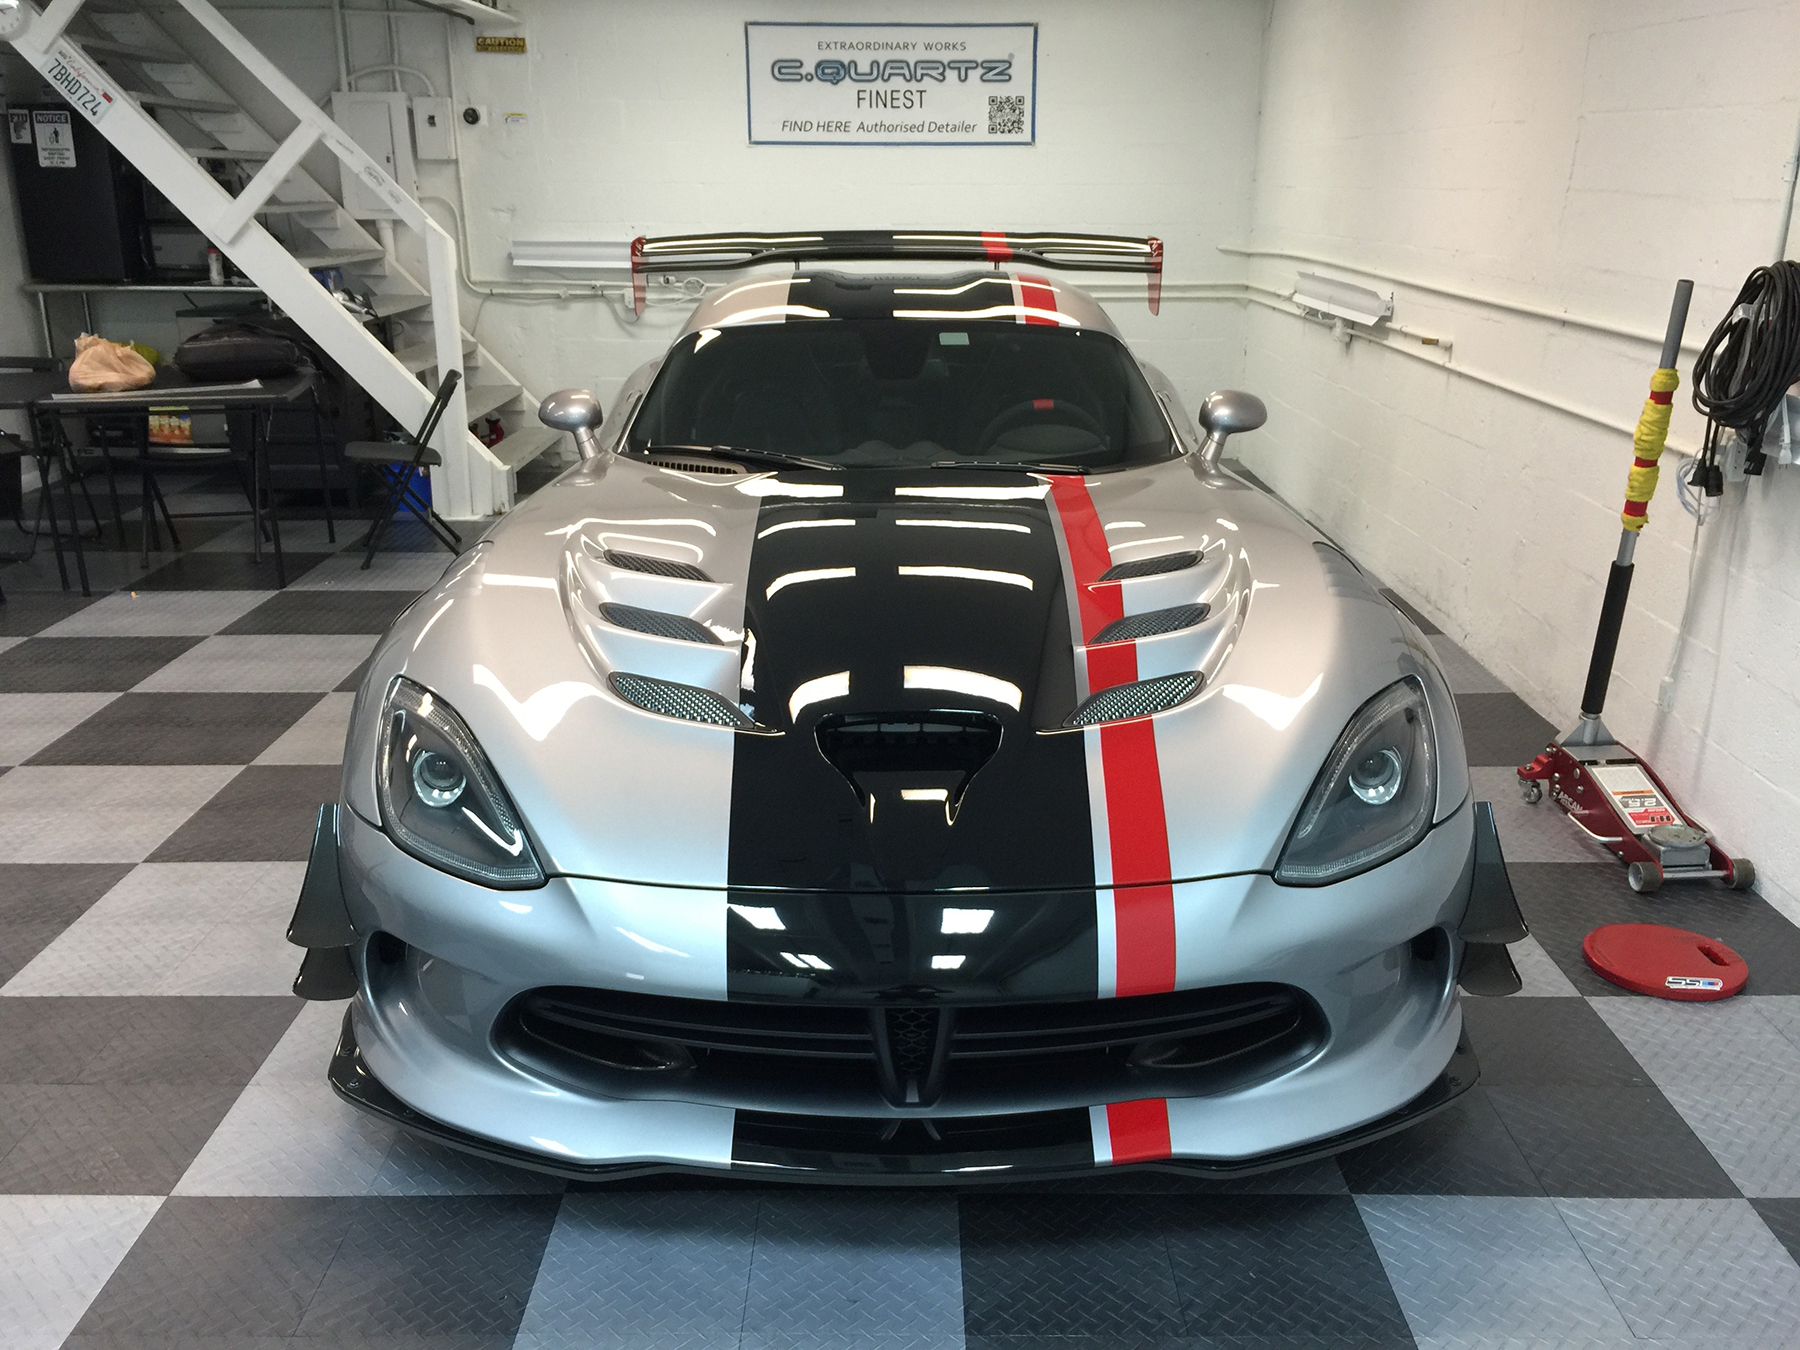 Dodge-Viper-ACR-XPEL-Ultimate-full-frontal-paint-protection-film-a